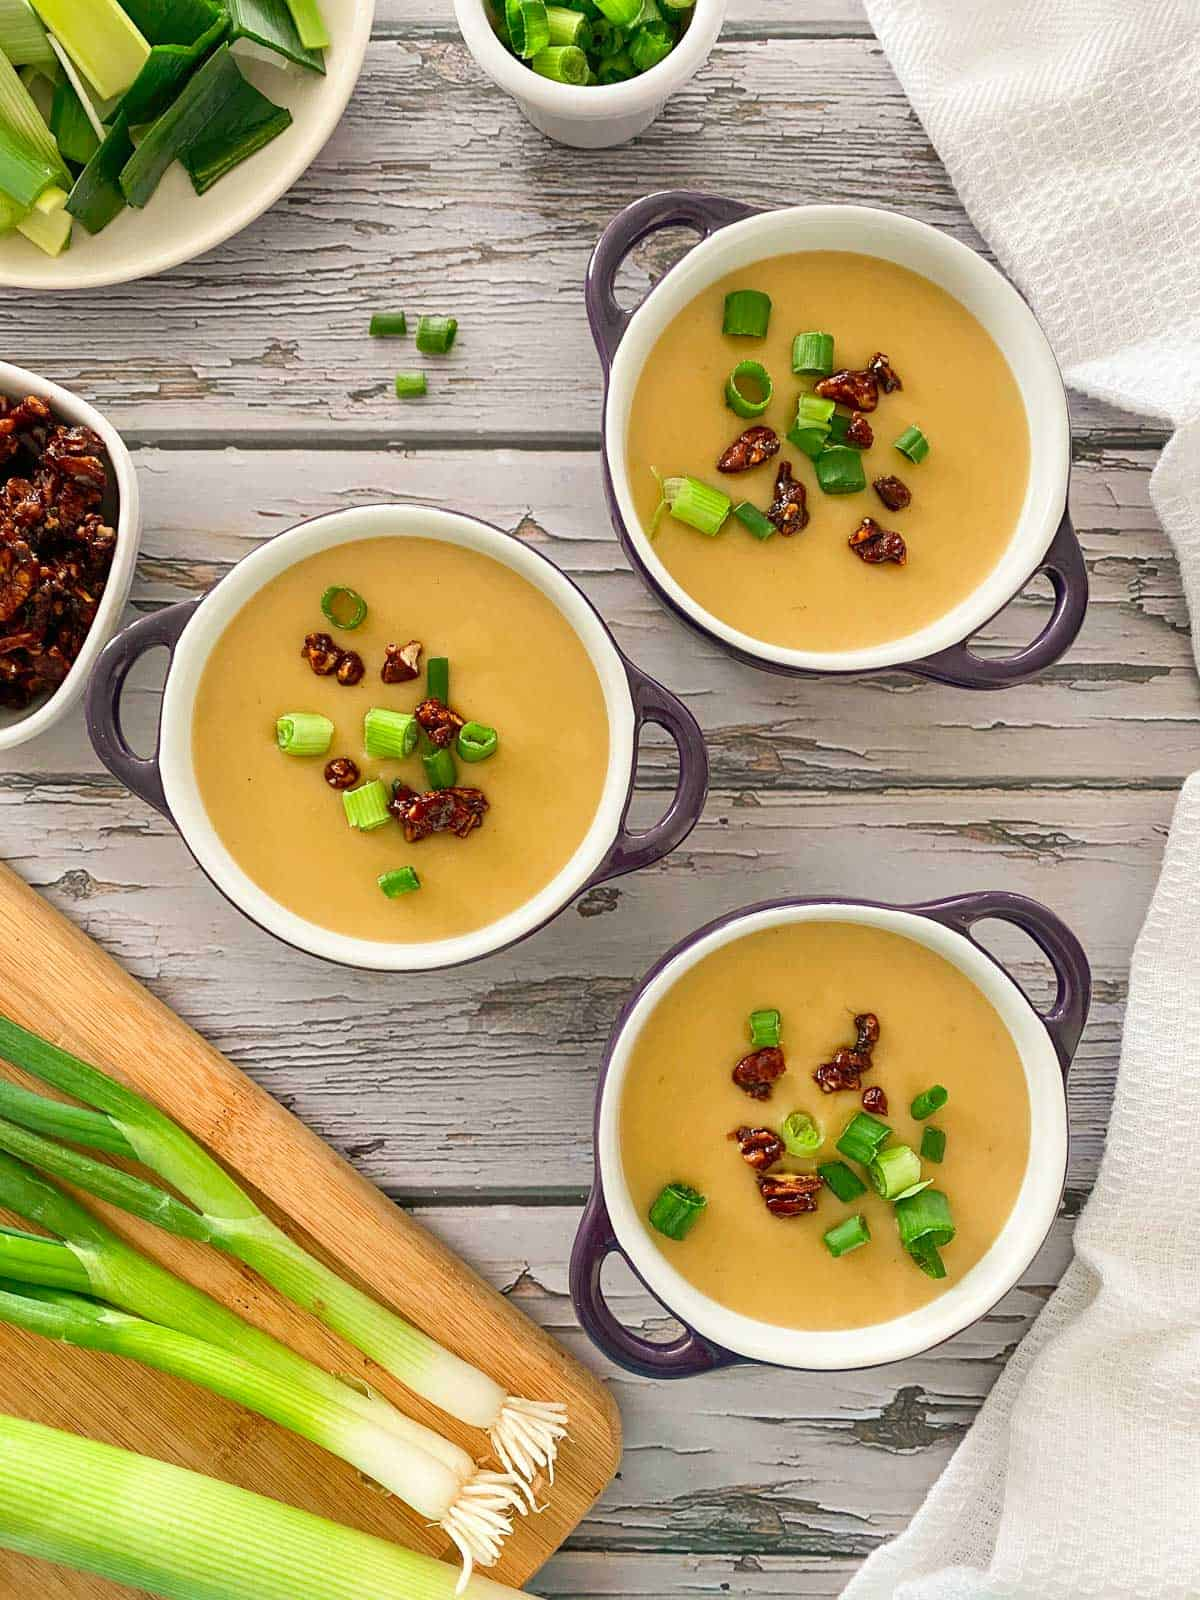 Three bowls of soup with bacon and green onion garnish.